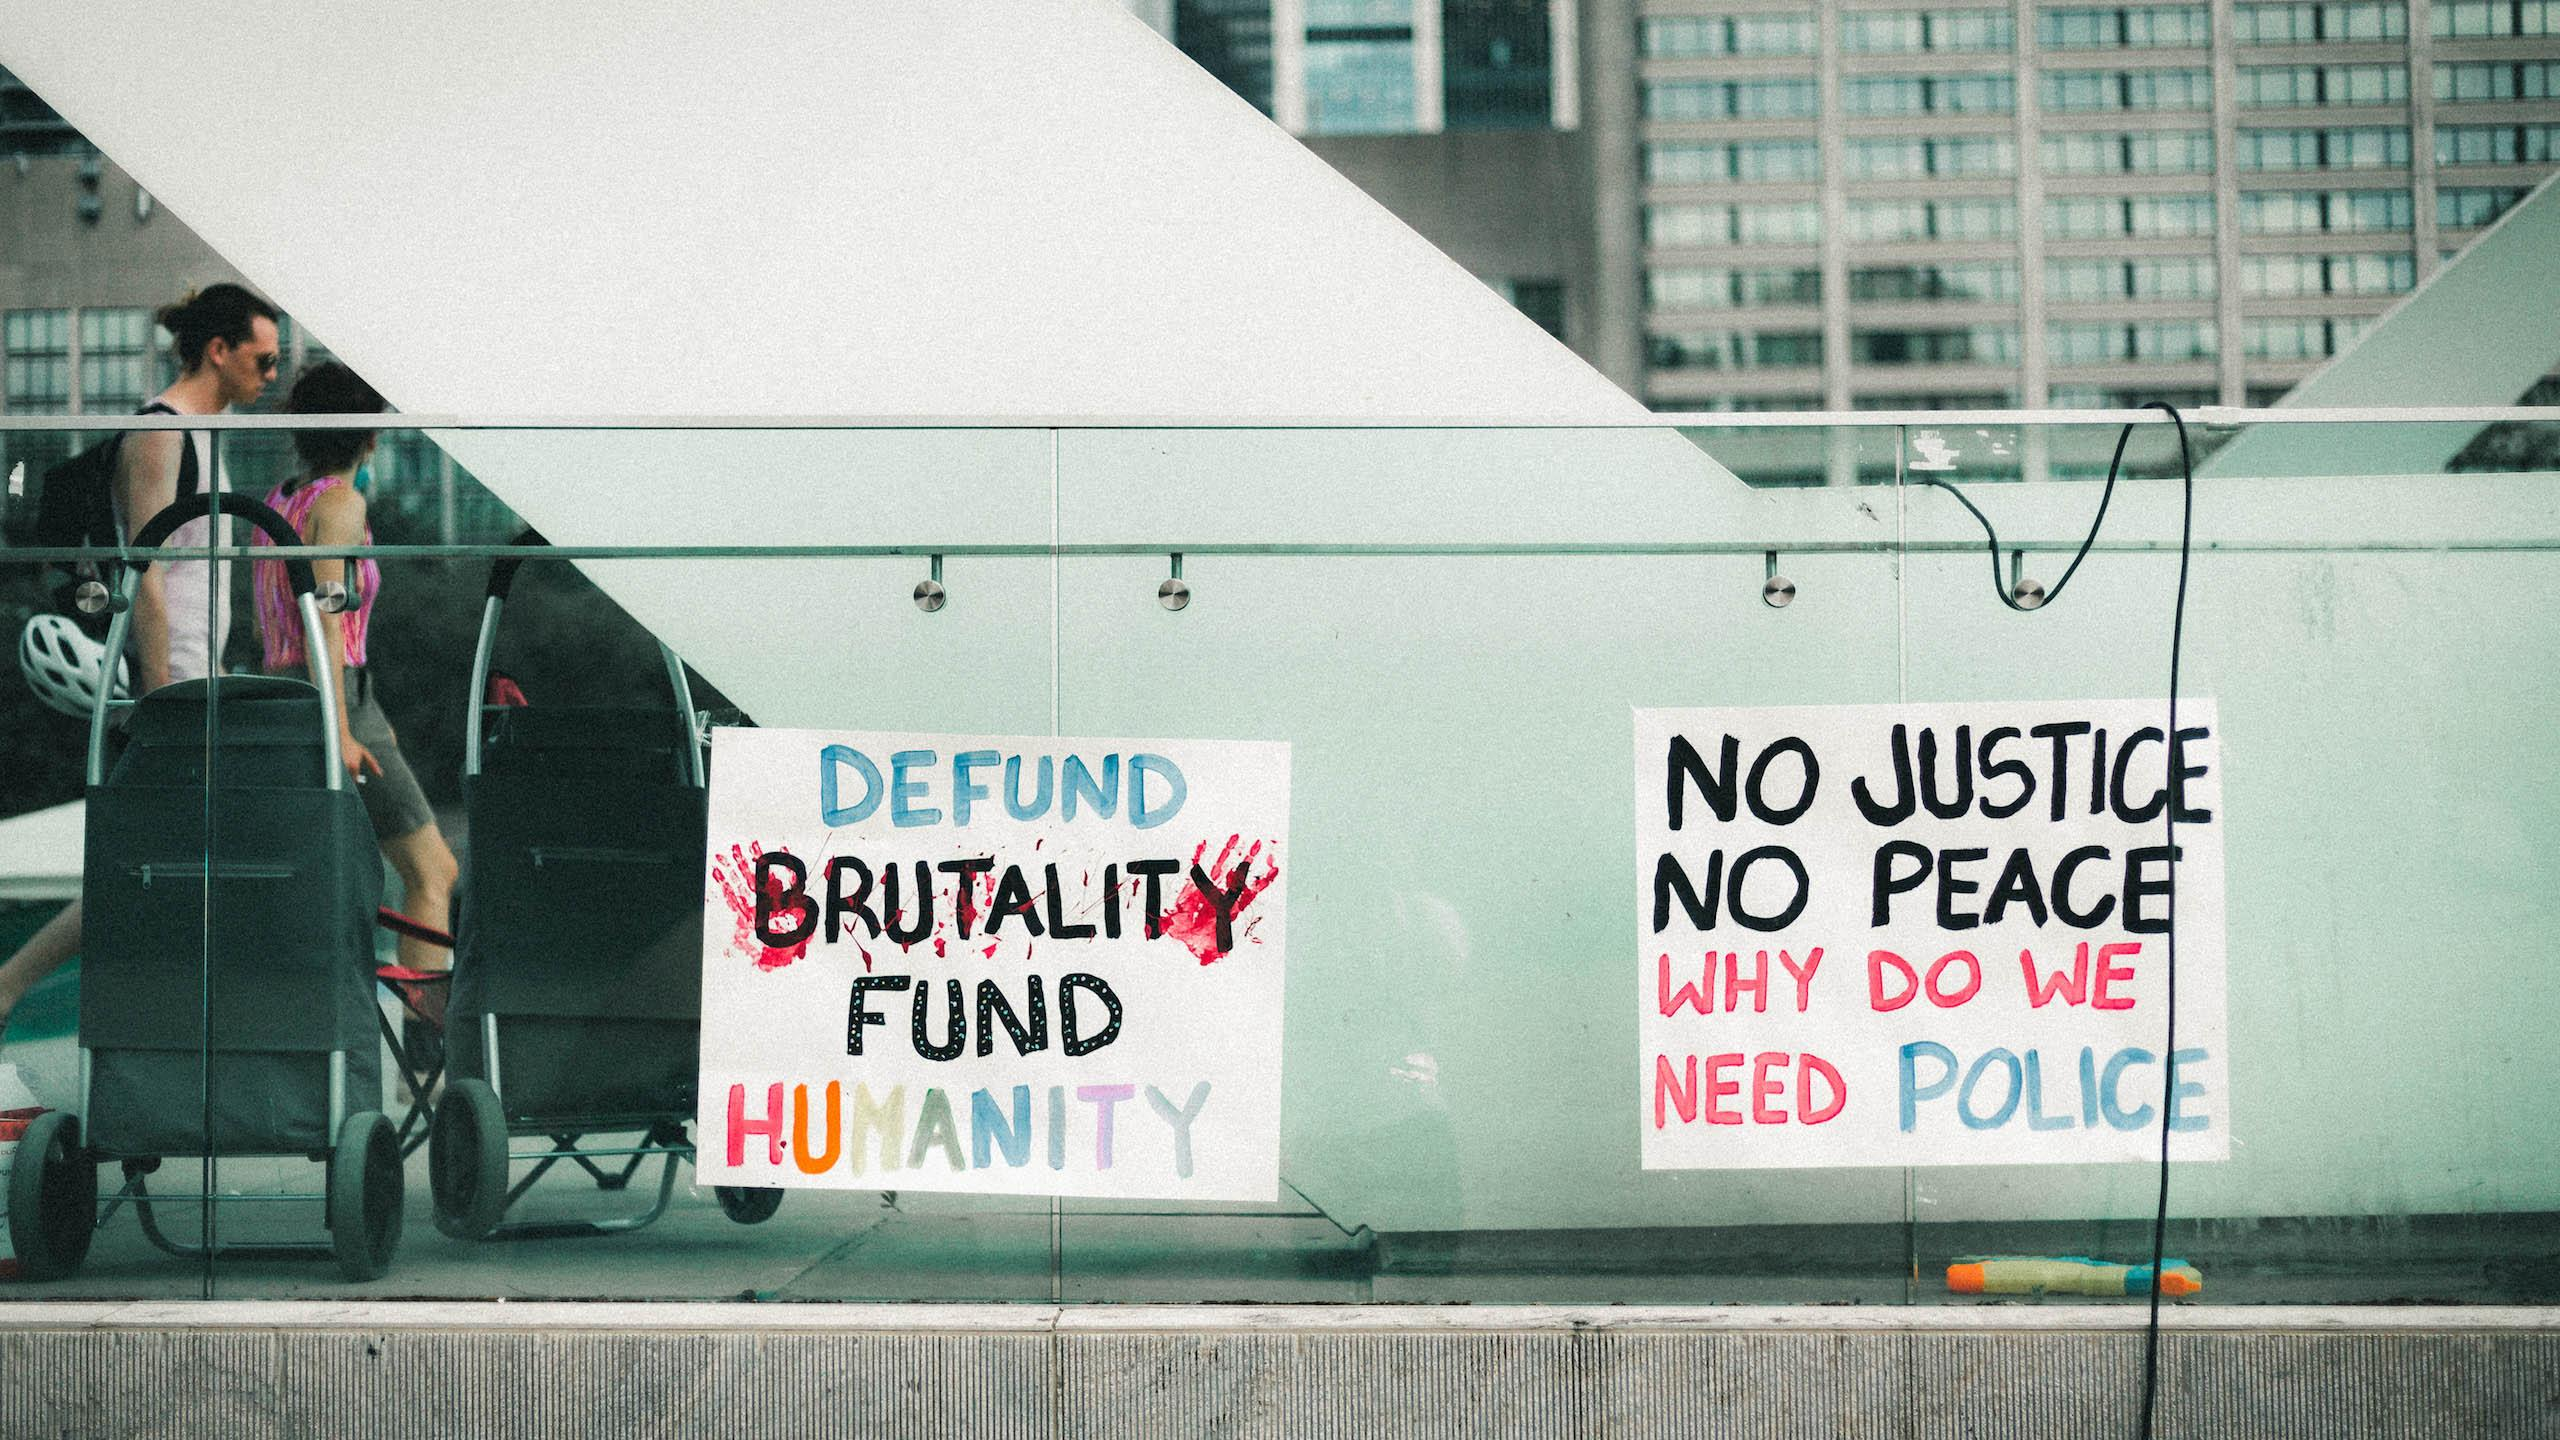 One sign reads: defund brutality, fund humanity; another sign reads no justice, no peace, why do we need police